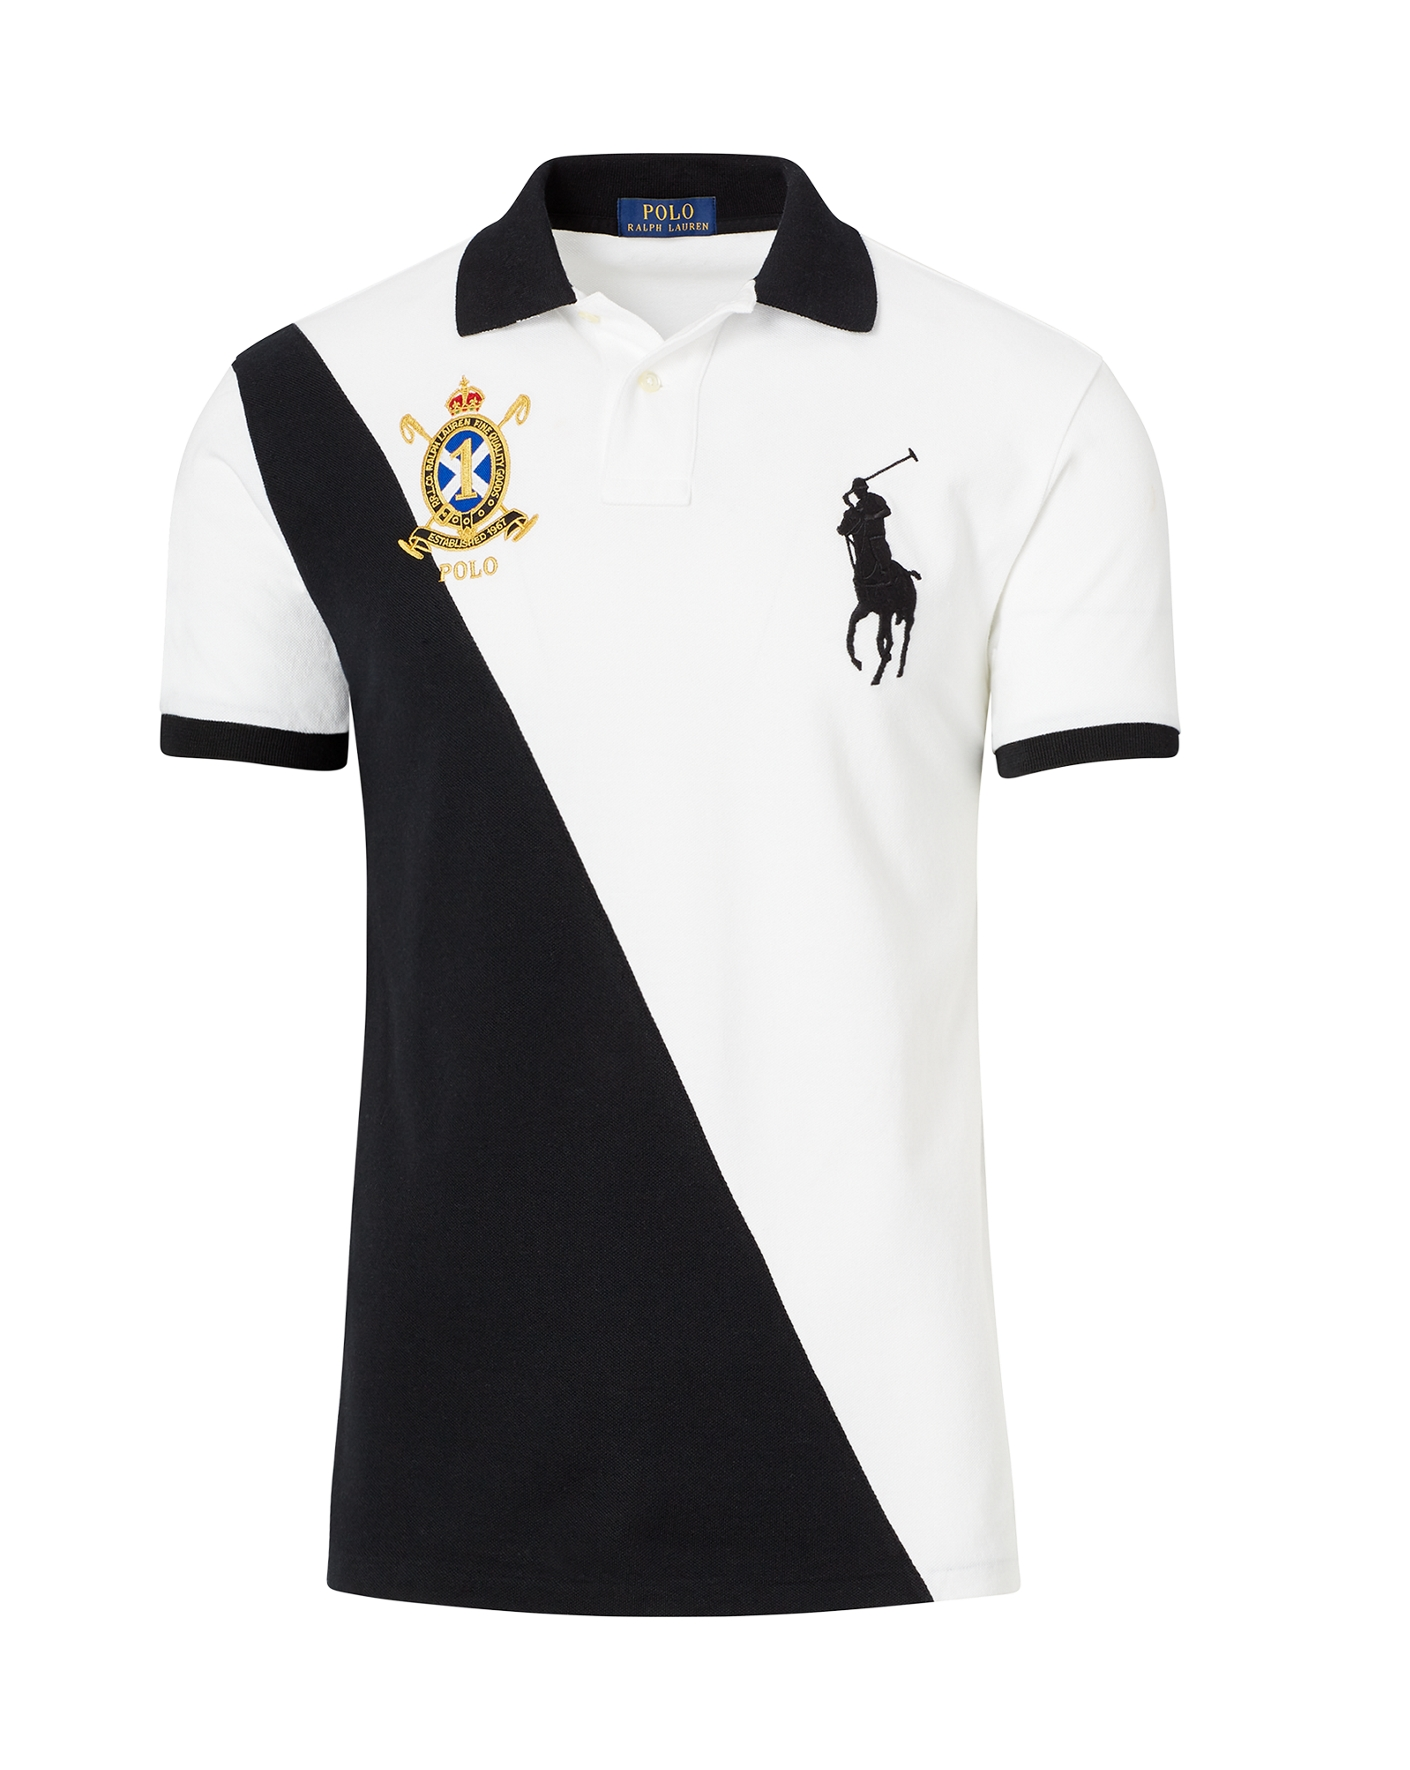 Additionally, enjoy great choices, timeless styles, and great prices with polo shirts on sale. Polos & Polo Shirts for Men Since its introduction in , Ralph Lauren's polo shirt has become a lasting icon of American culture and lifestyle.